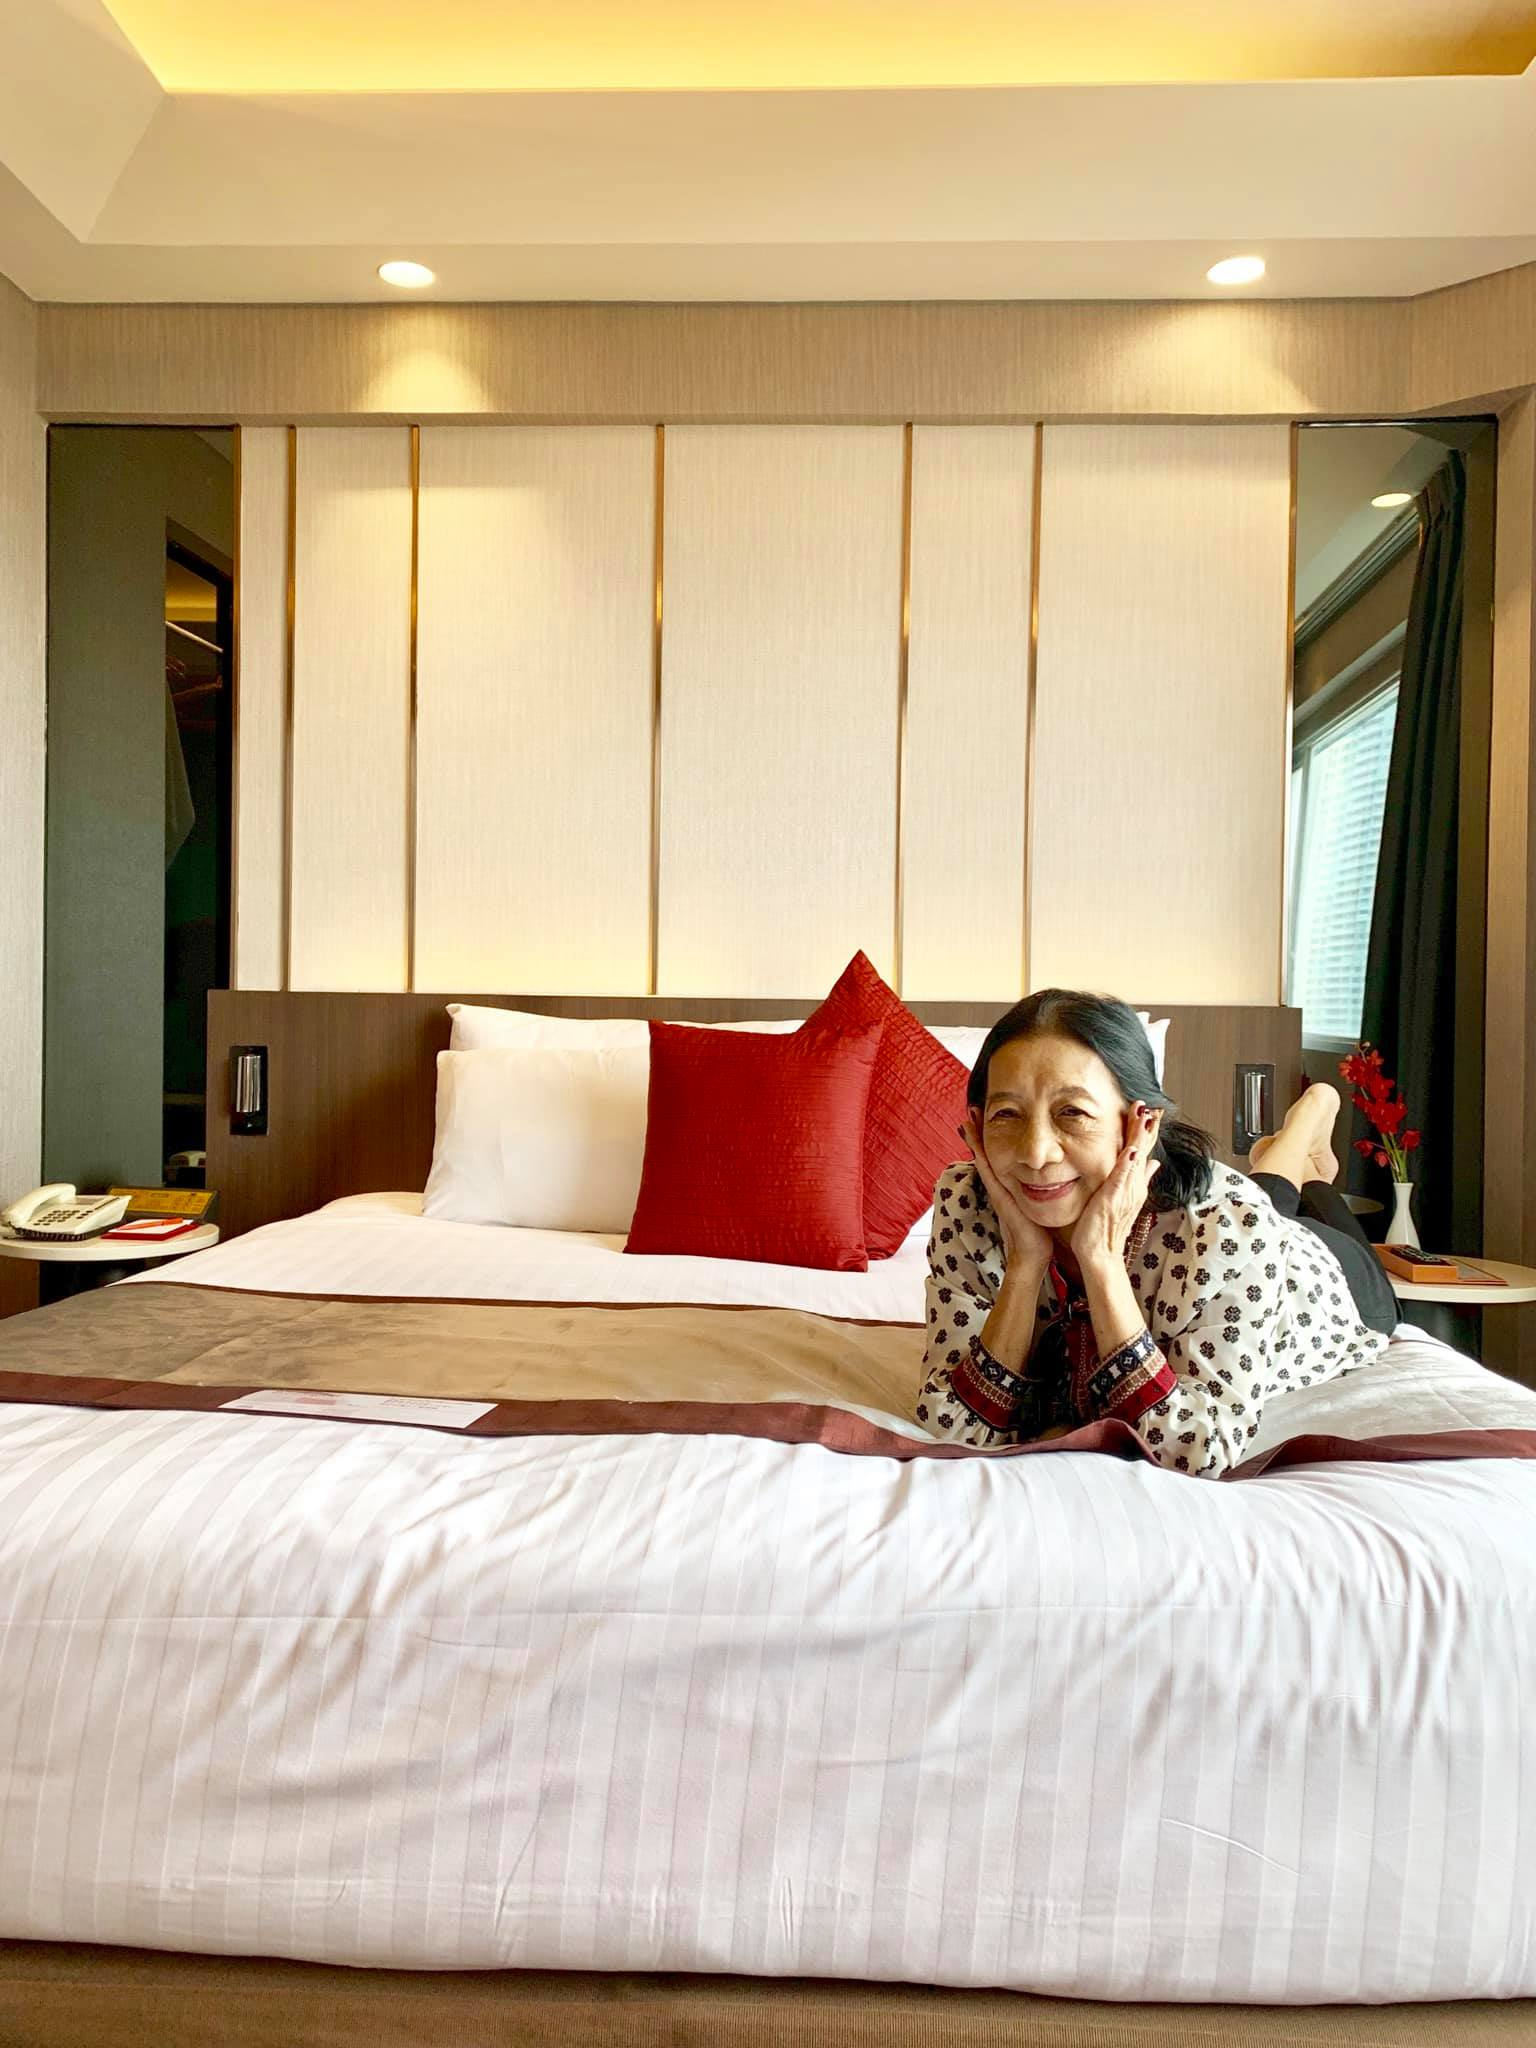 Our Luxurious Staycation At Ramada Plaza In Bangkok And Our Tour With Tinggly Experiences29